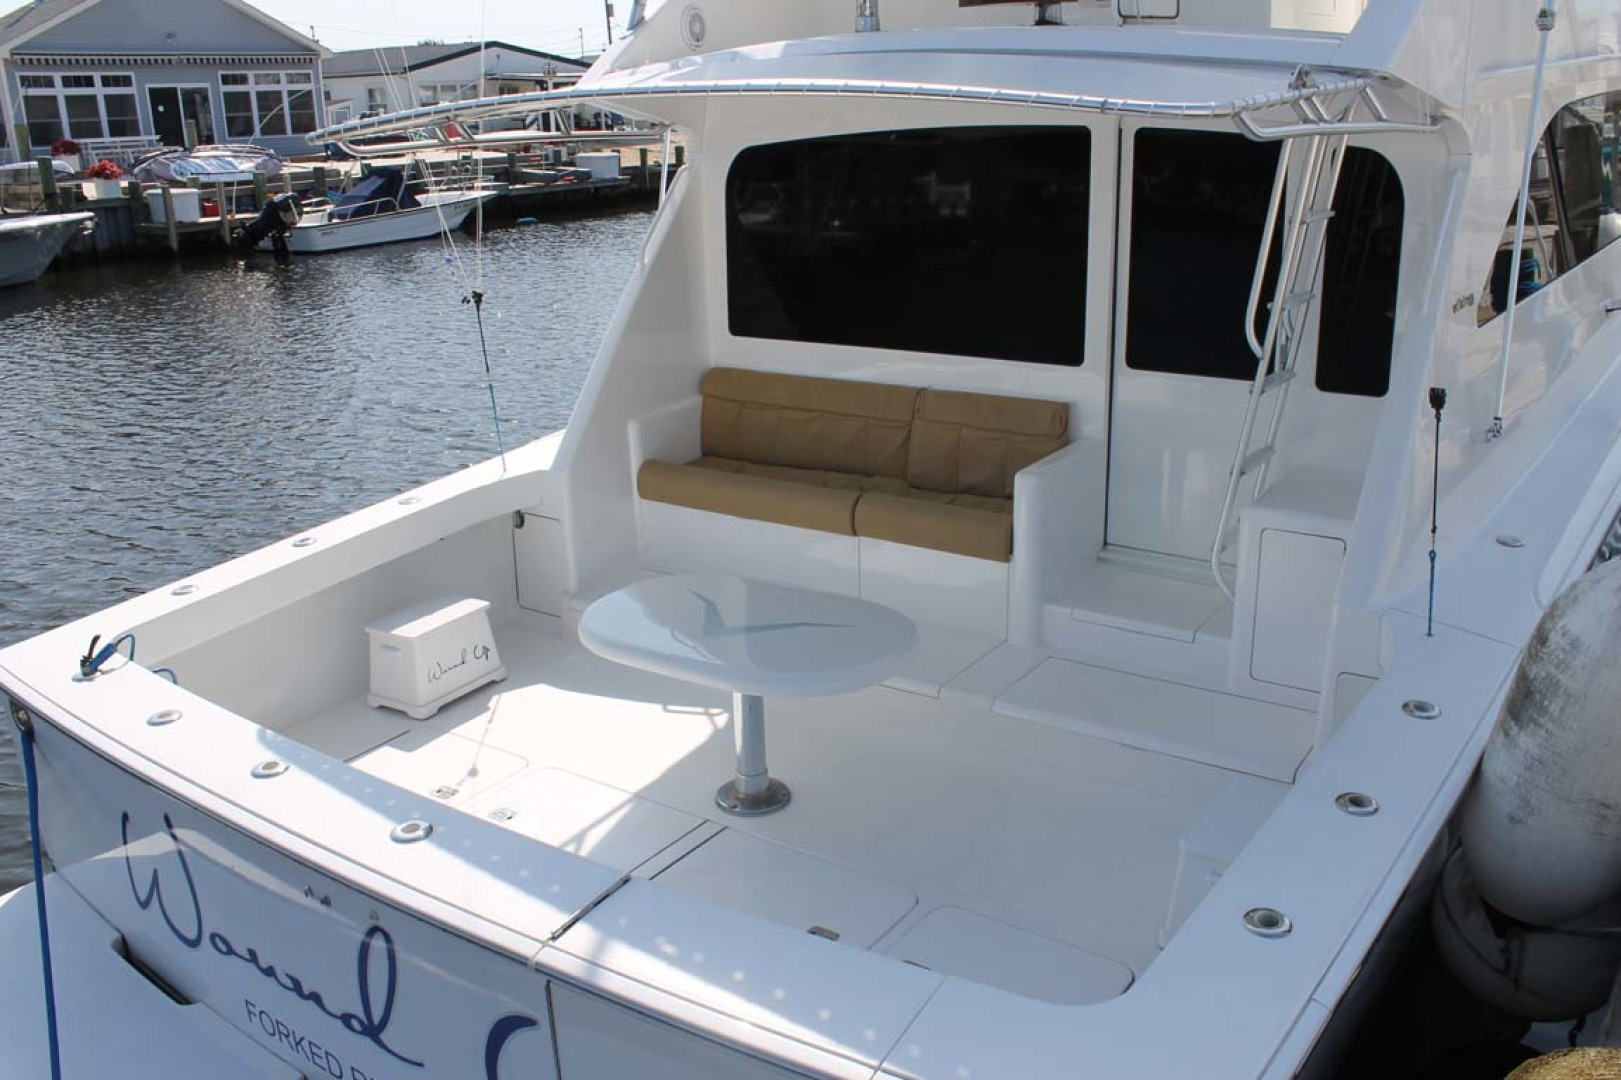 Viking-52 Convertible 2002-Wound Up Cape May-New Jersey-United States-Cockpit-1230094 | Thumbnail